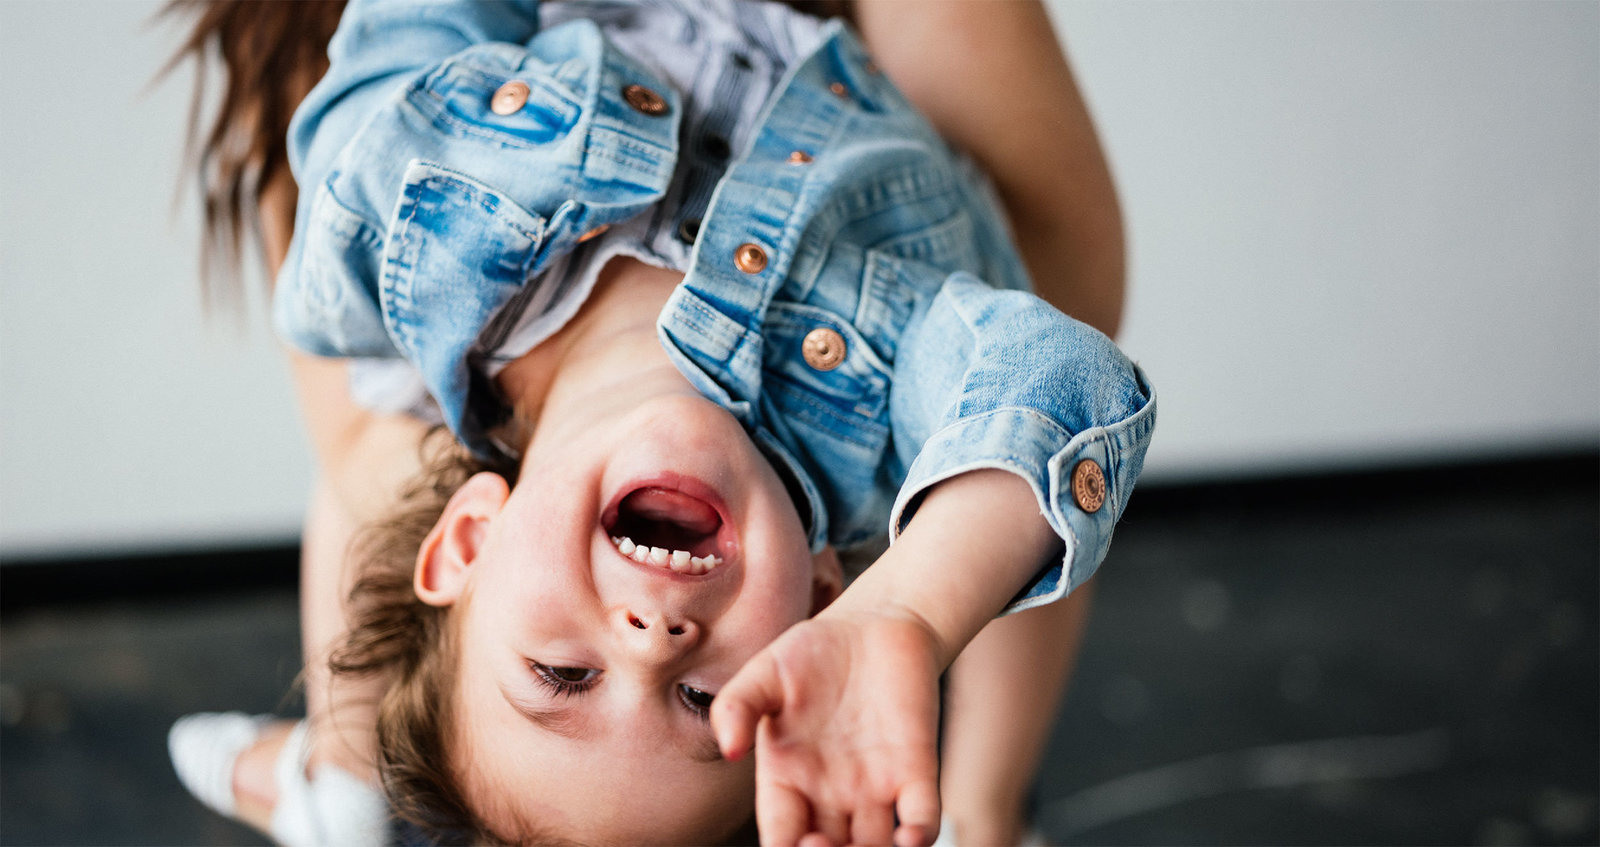 toddler girl hanging upside down with a joyful expression